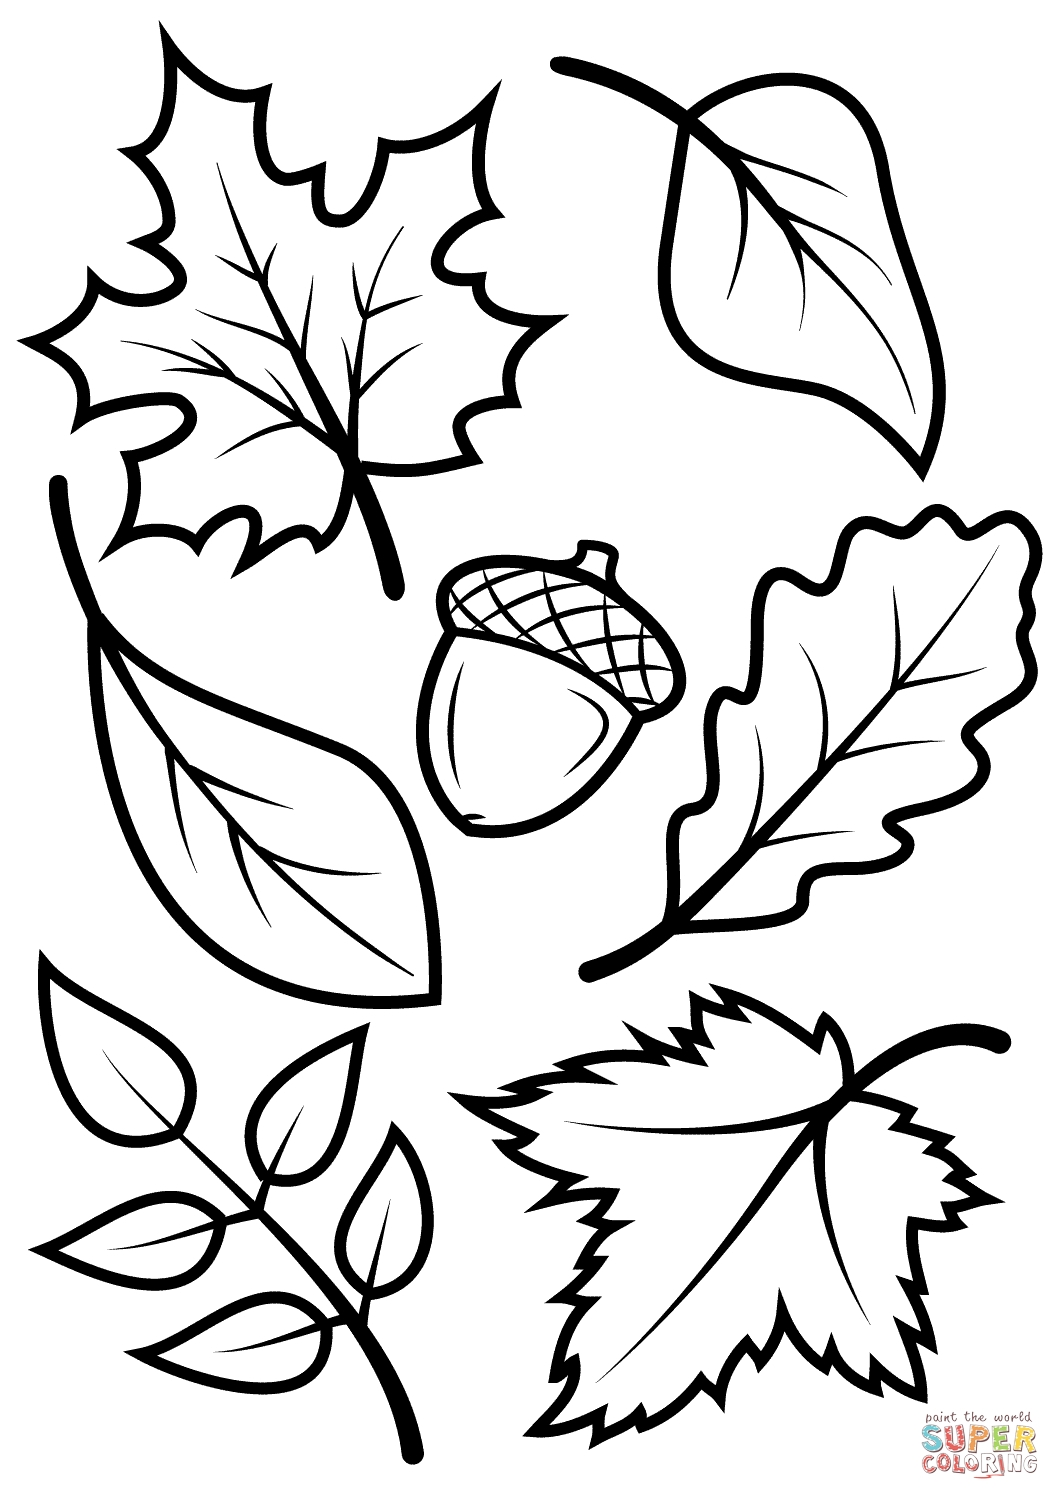 fall leaves coloring pages - color page of leaves fall leaves and acorn coloring page free printable coloring pages